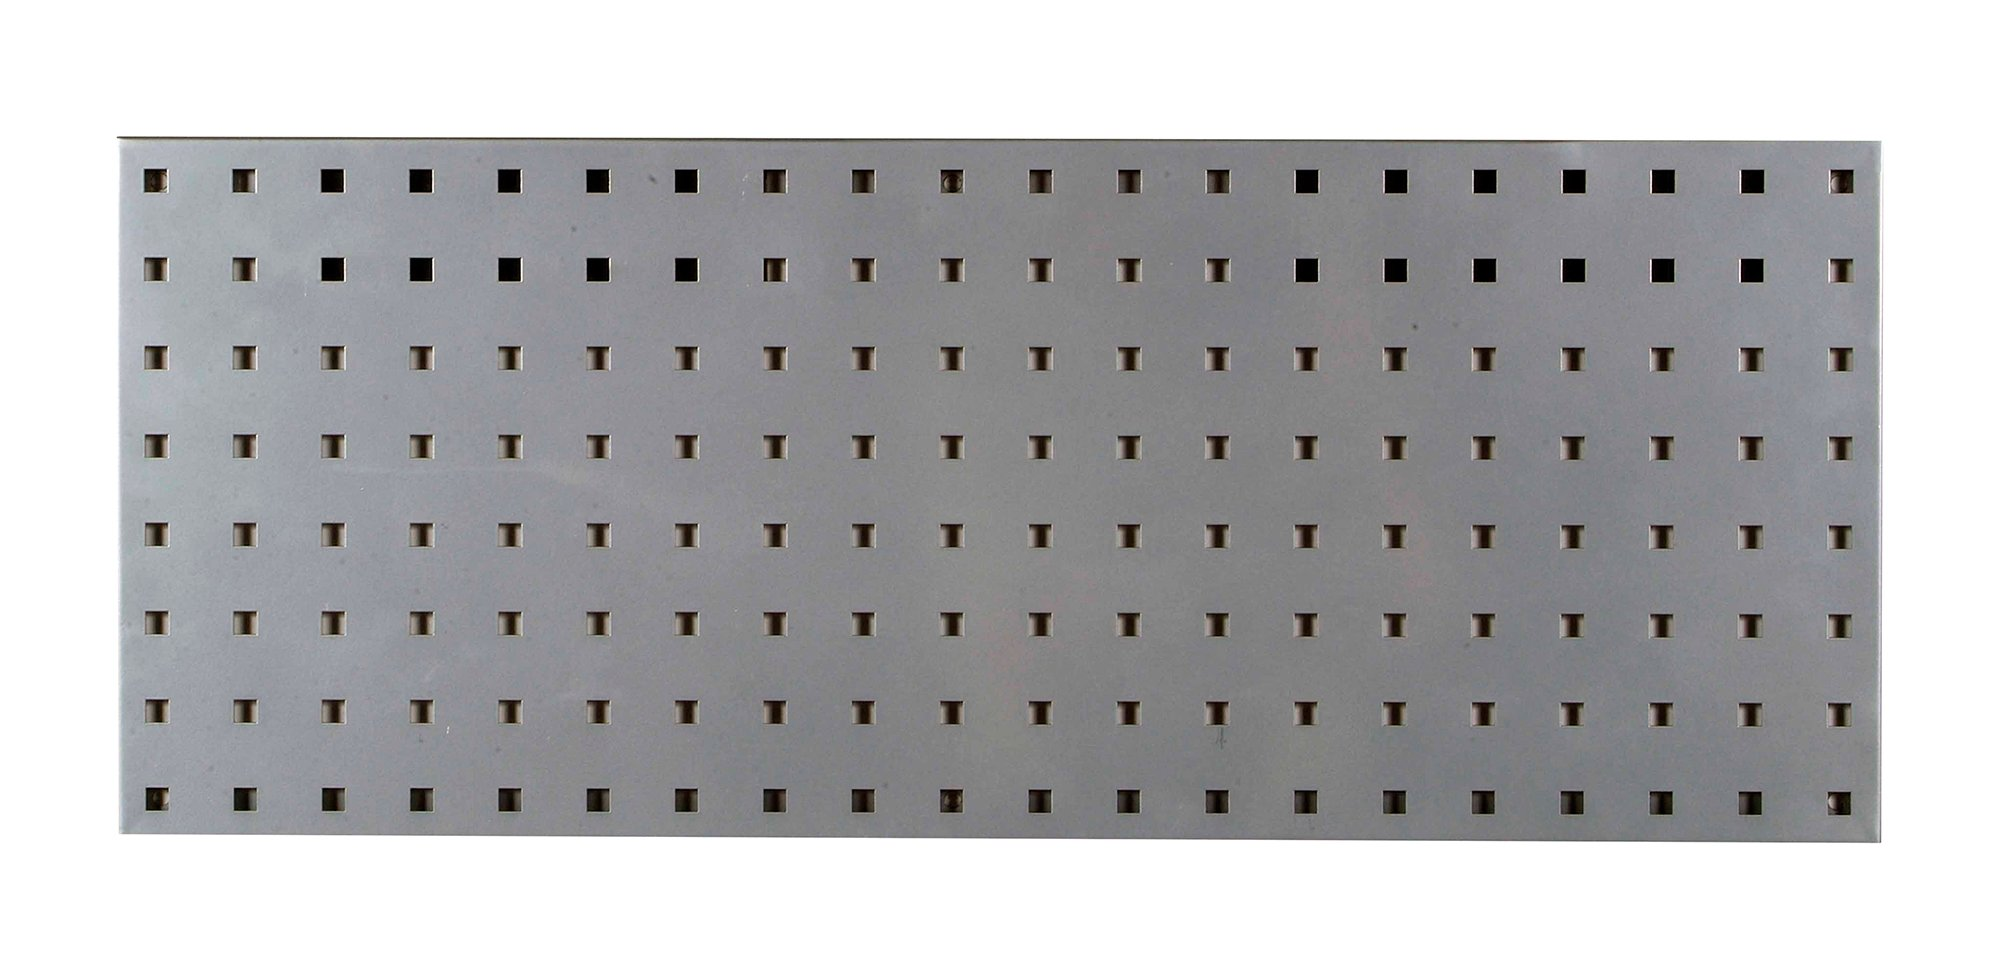 LocBoard LBS-3S Steel Square Hole Pegboard Strip, 30'' x 12'', Silver